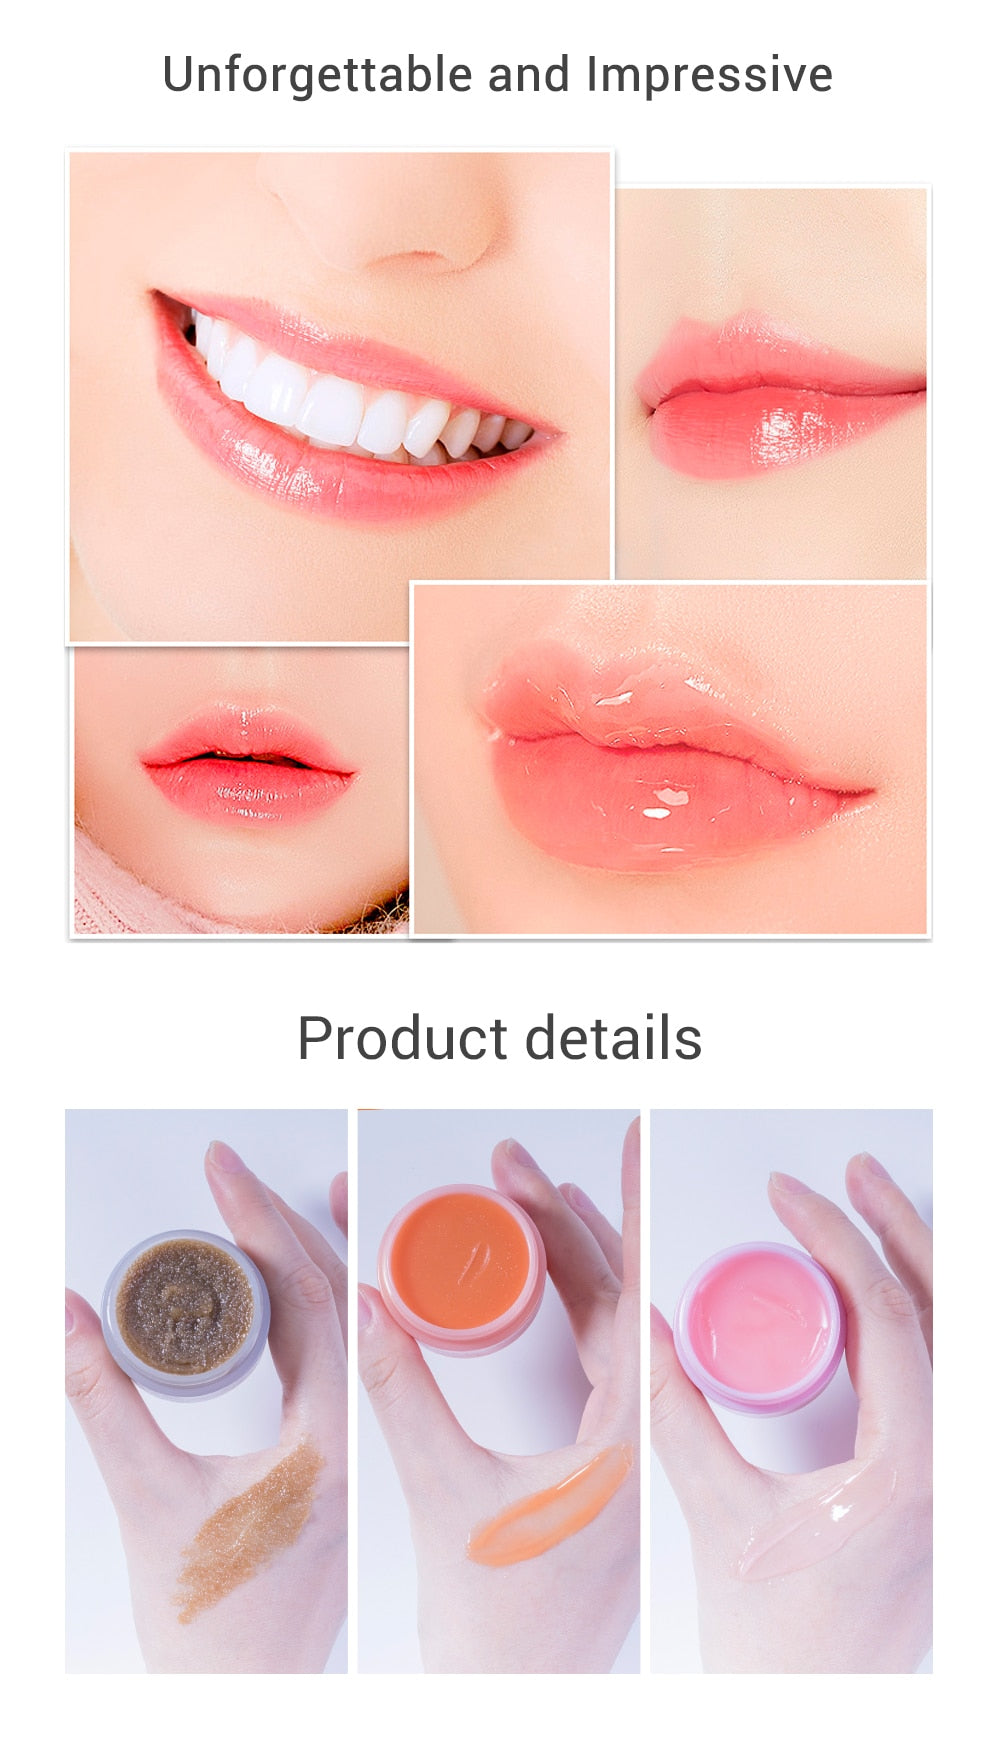 Moisturizing Nourish Repair Fine Lines Sleeping Lip Mask